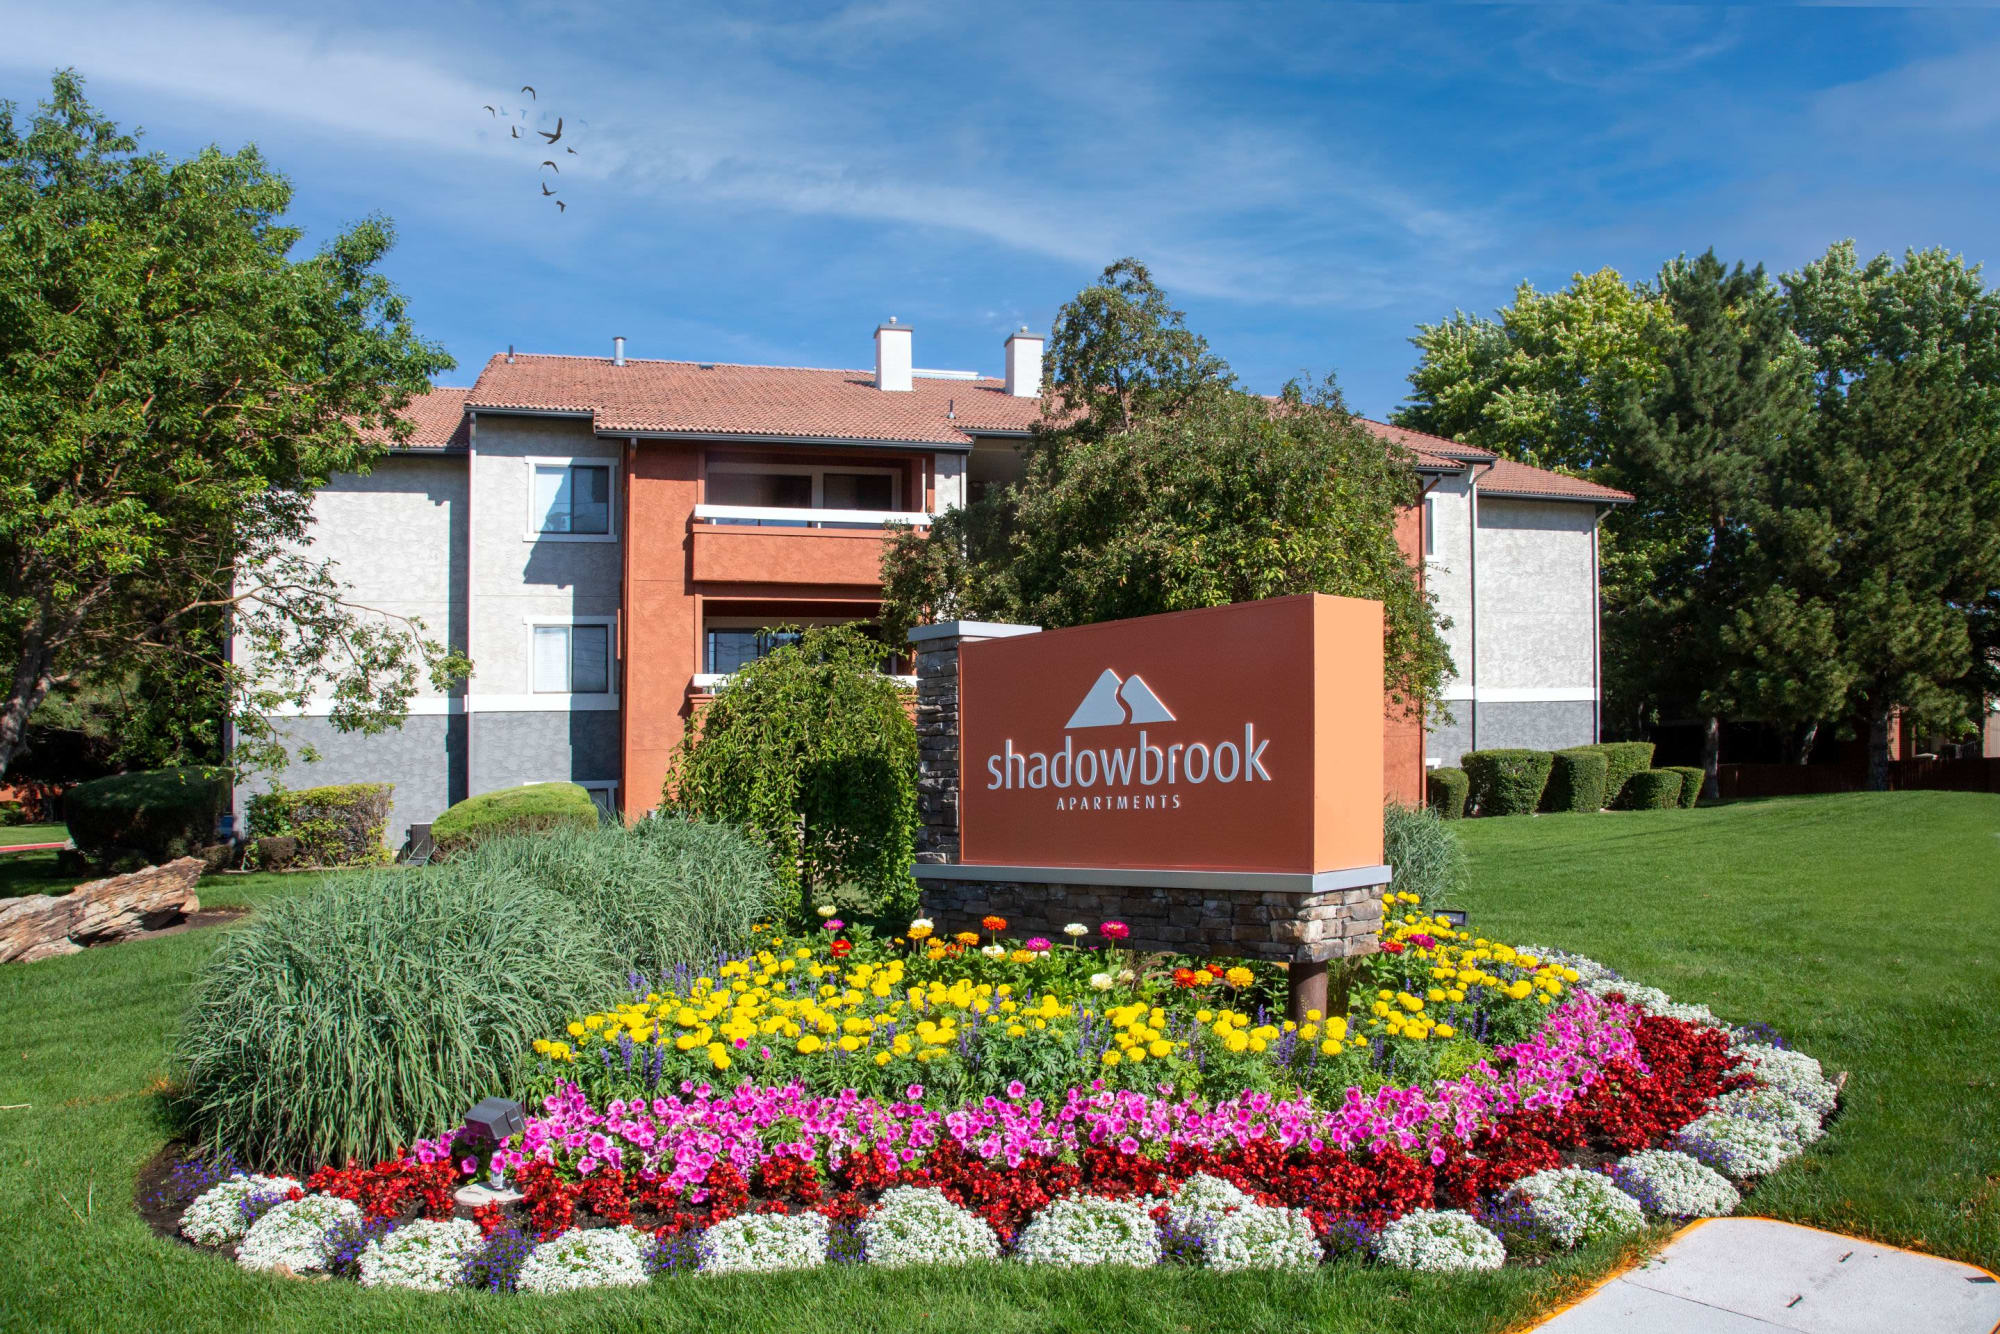 The monument sign at Shadowbrook Apartments in West Valley City, Utah